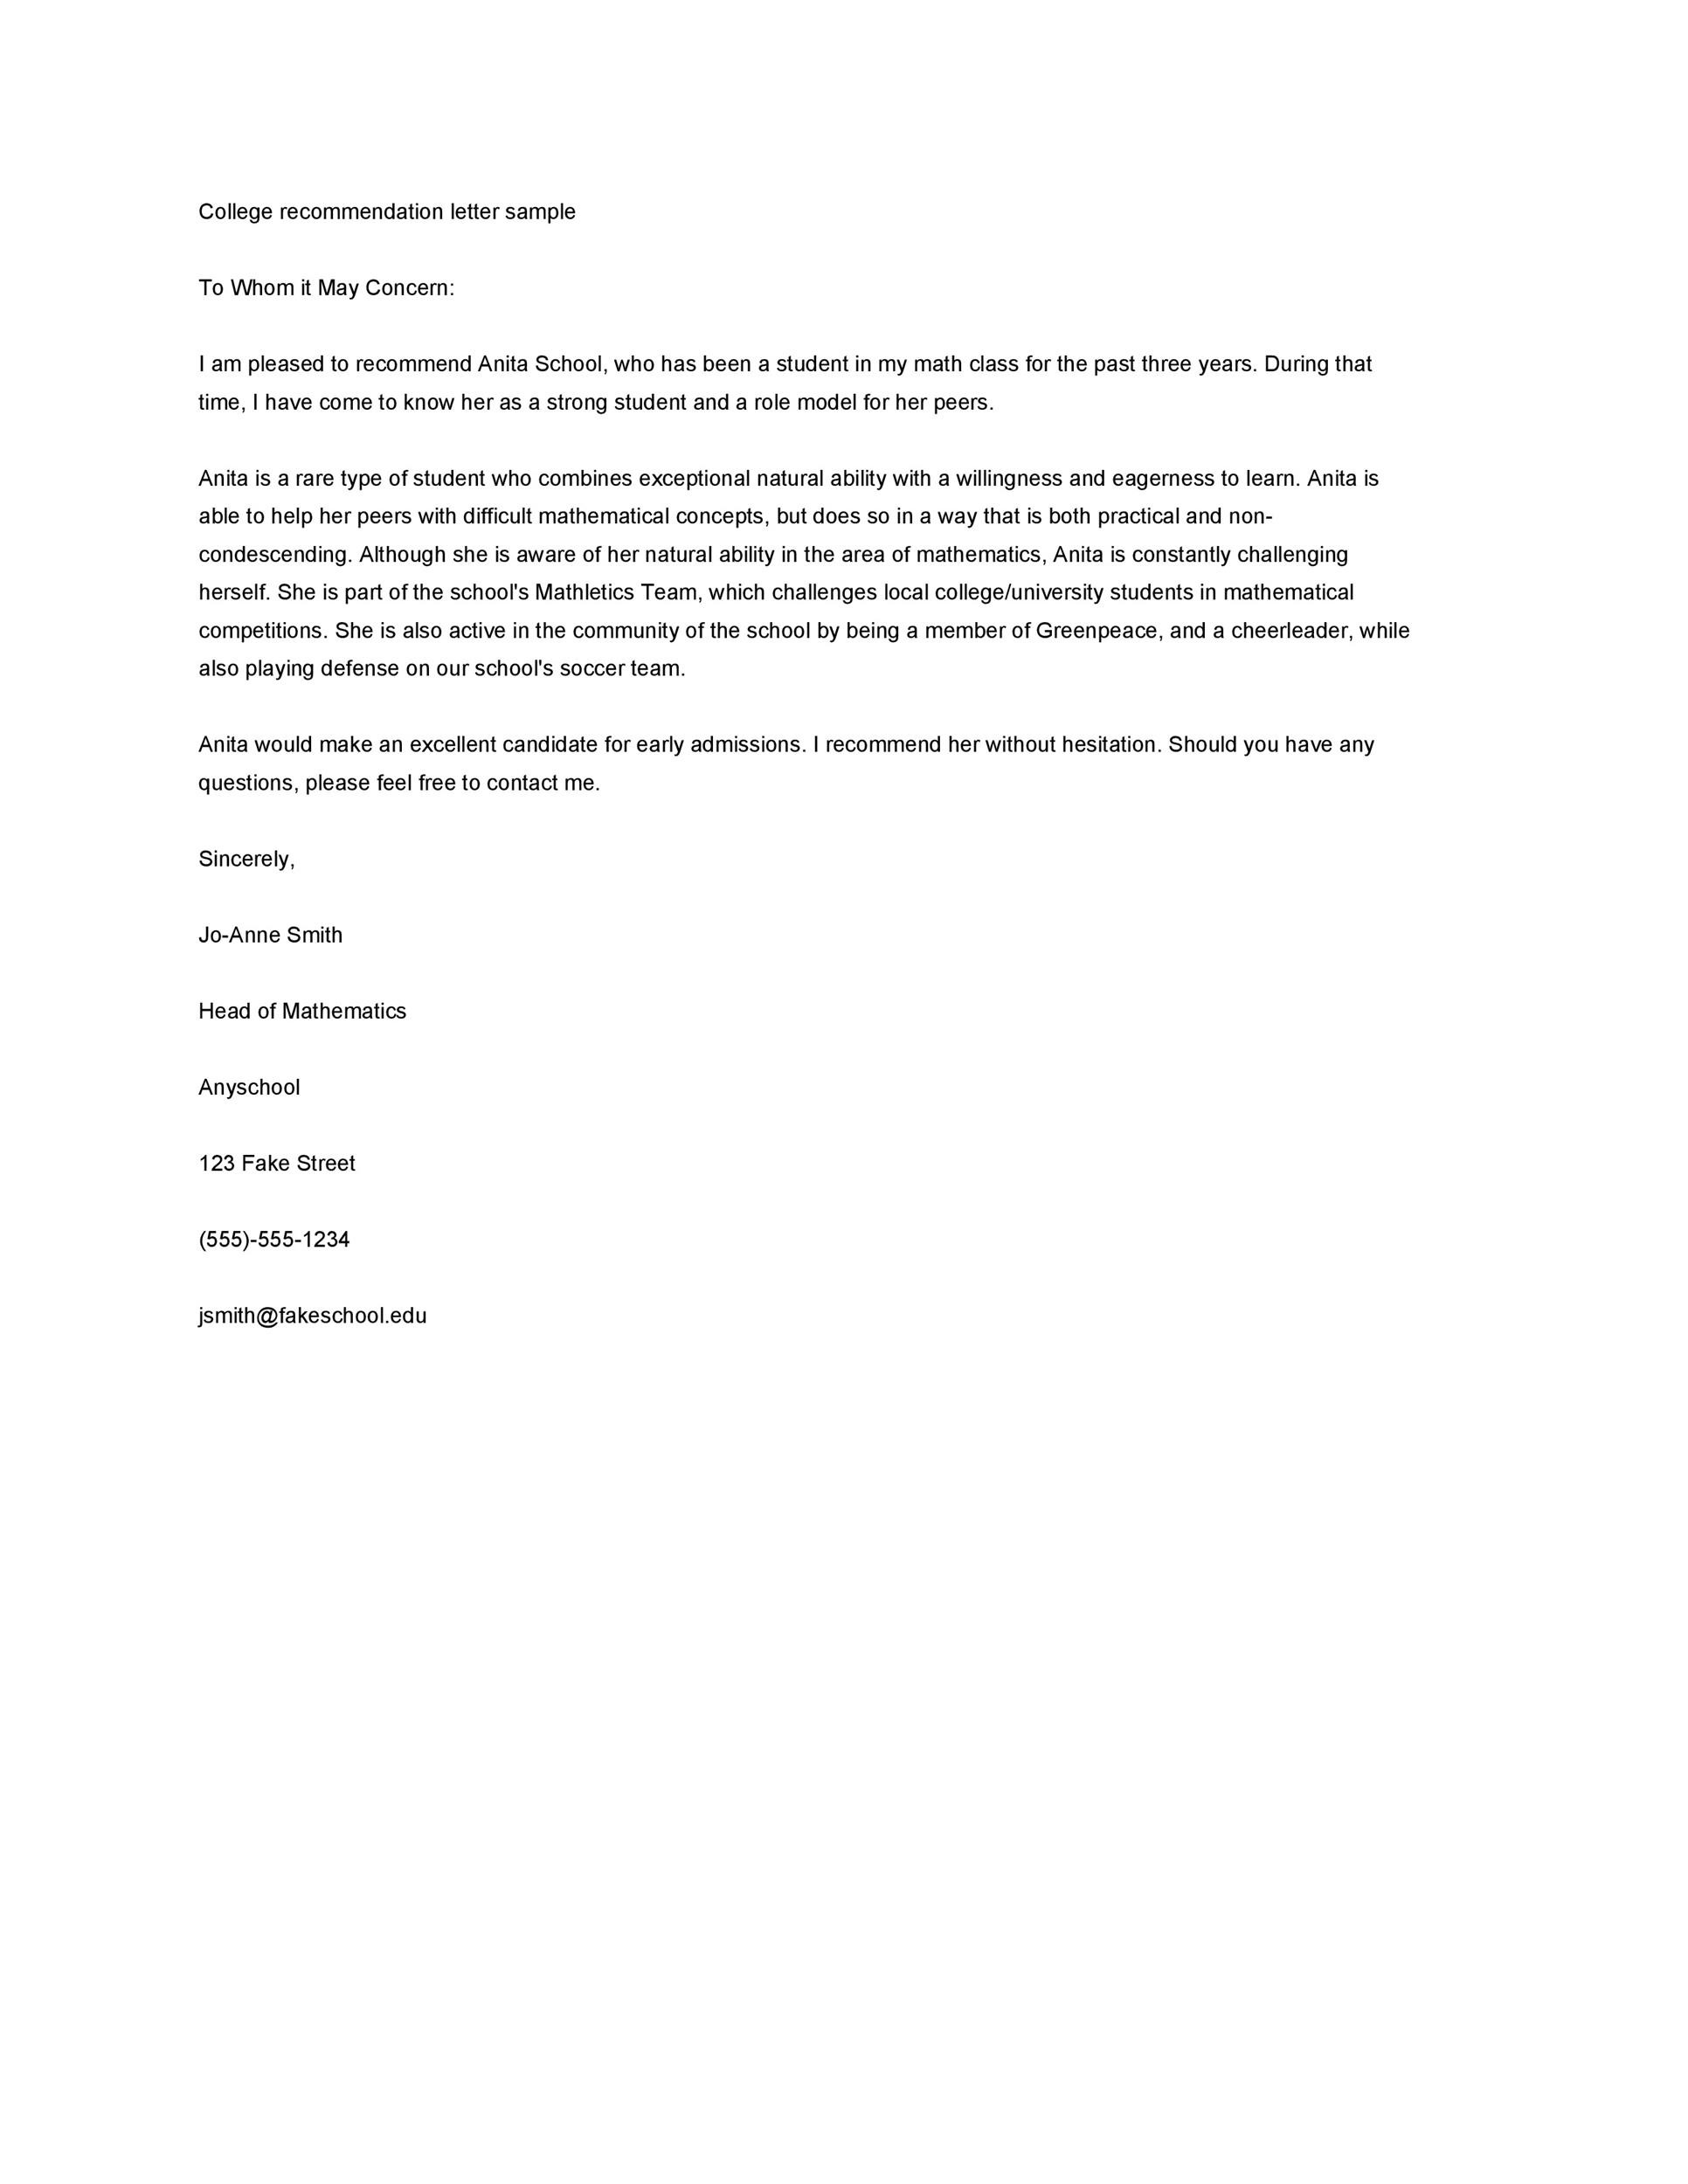 examples of recommendation letters 43 free letter of recommendation templates amp samples 21622